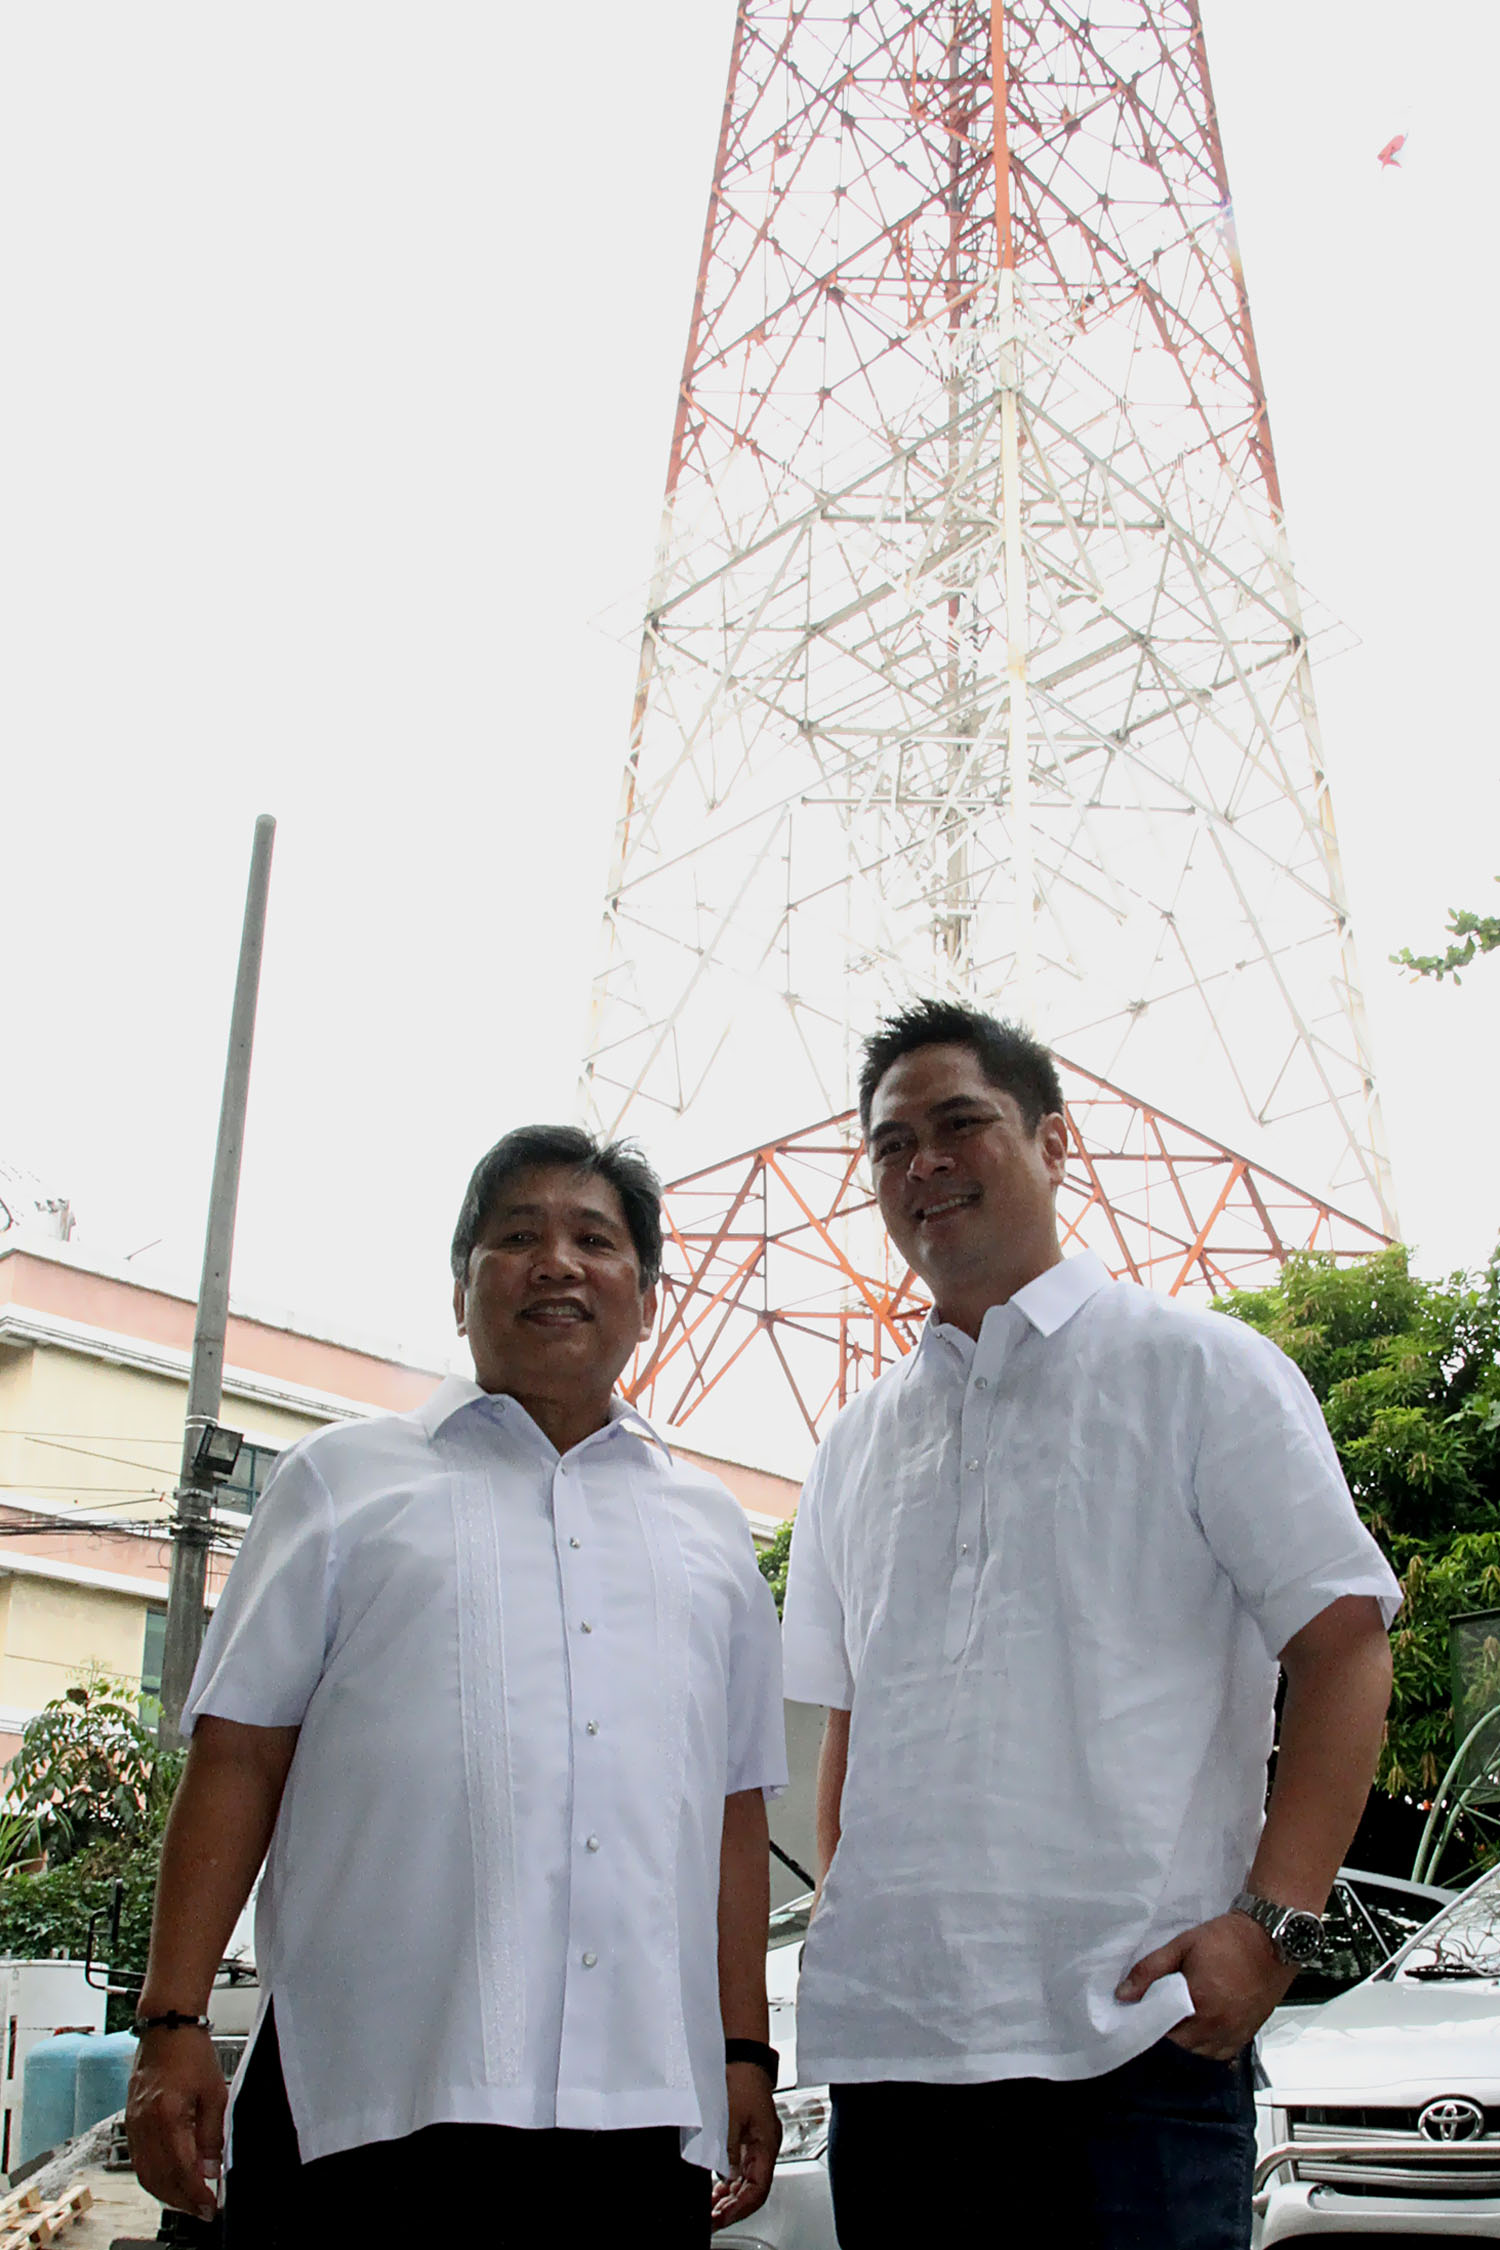 Incoming Presidential Communications Operations Office (PCOO) Secretary Martin Andanar (right) pose for a souvenir photo with outgoing Secretary Herminio Coloma Jr. during their visit at the different government media offices located at the National Media Center in Quezon City on Monday. Seen at the background is a portion of the 500-foot high PTV4 transmitter tower. (Photo: Oliver Marquez/PNA)